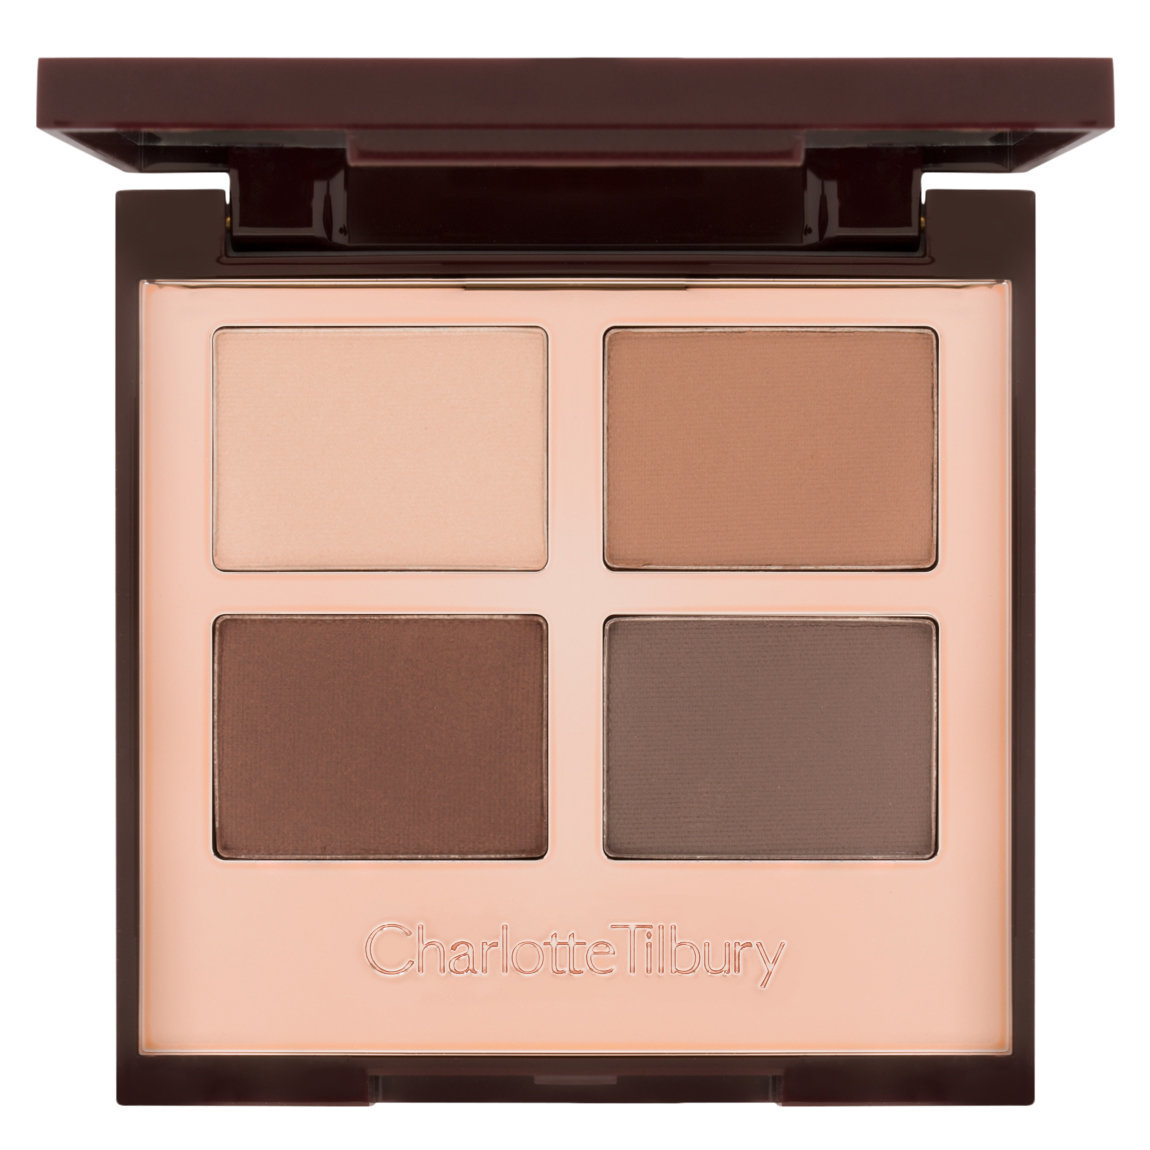 Charlotte Tilbury Luxury Palette The Sophisticate product smear.